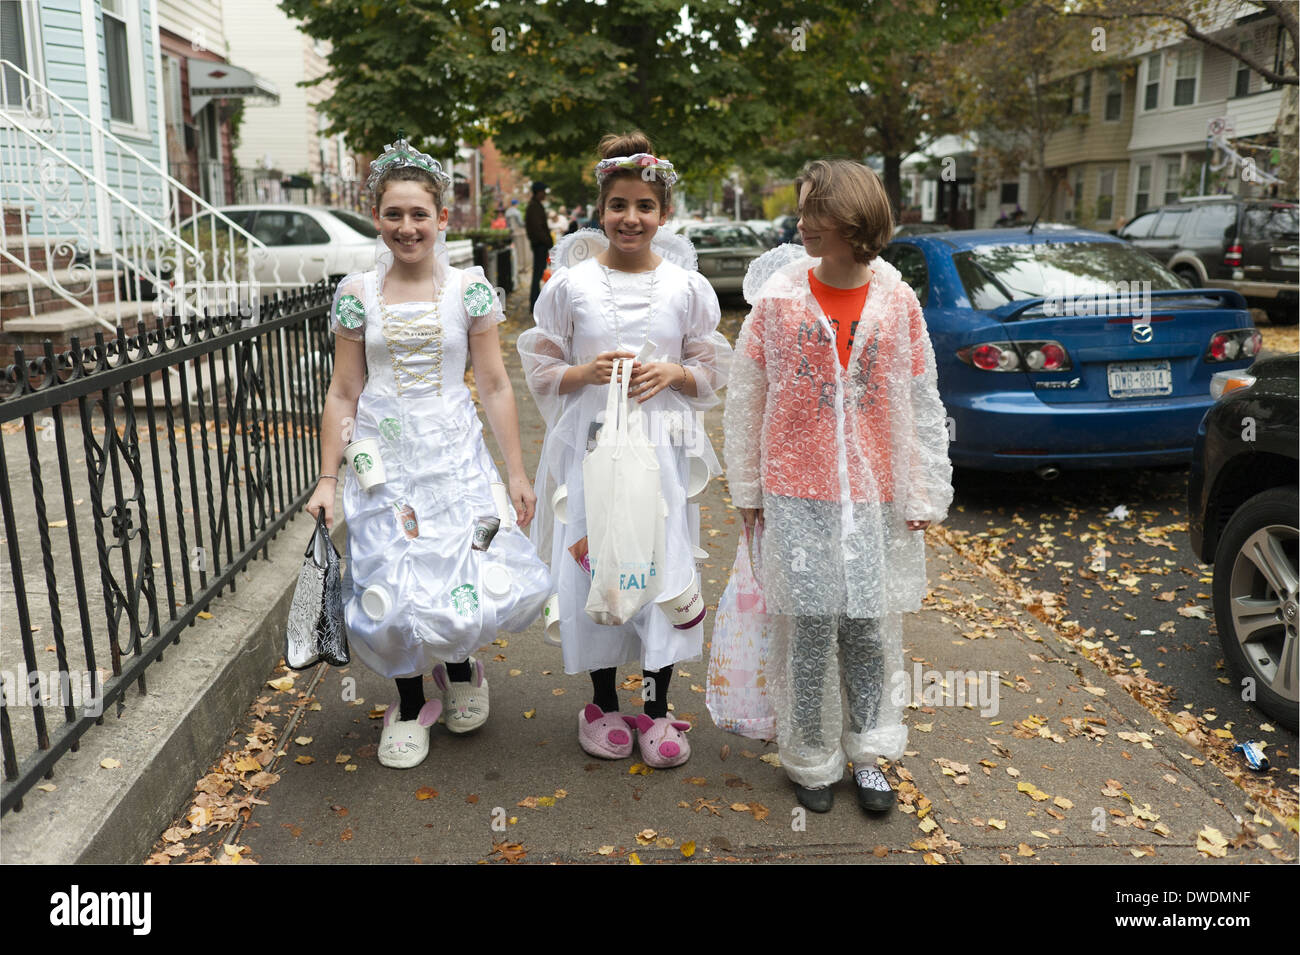 Halloween trick or treaters in the Kensington section of Brooklyn, NY.  Girls dressed in costumes made from recycled materials.